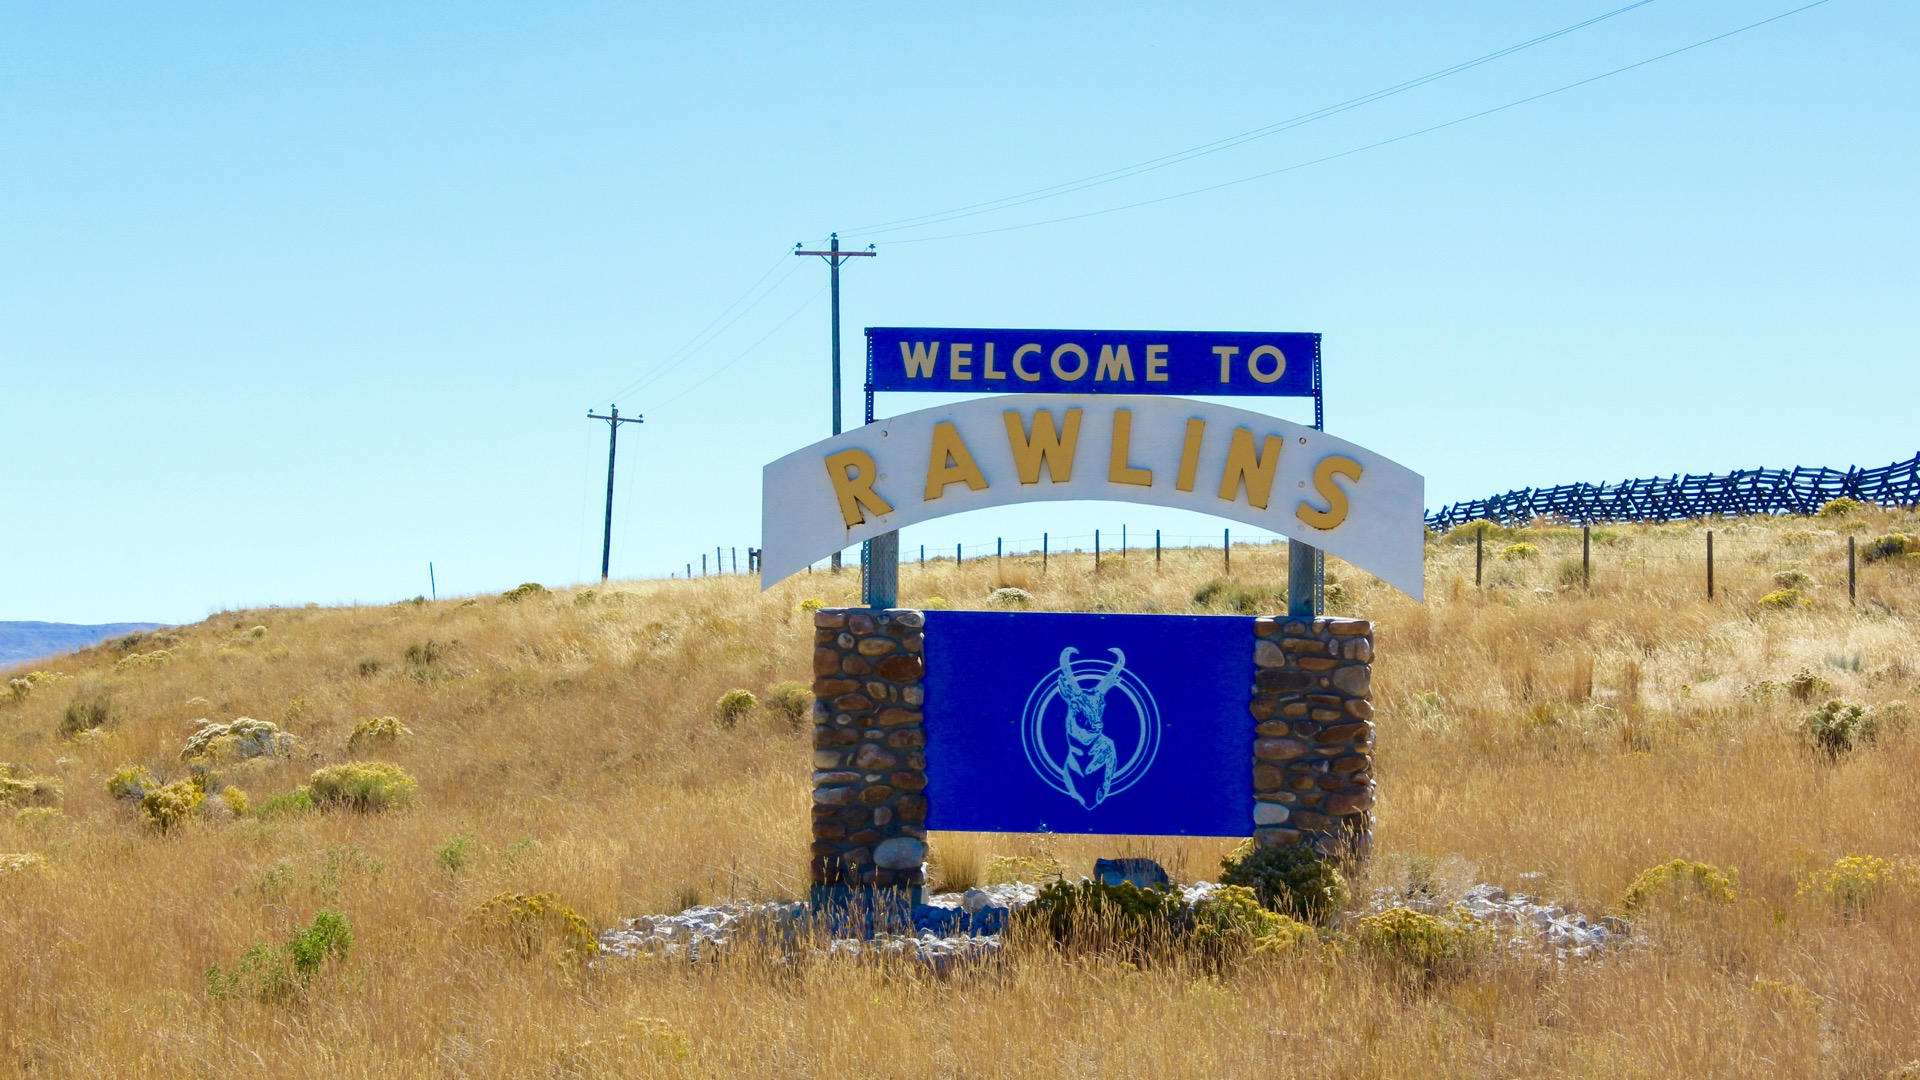 Rawlins is the County Seat of Carbon County, Wyoming